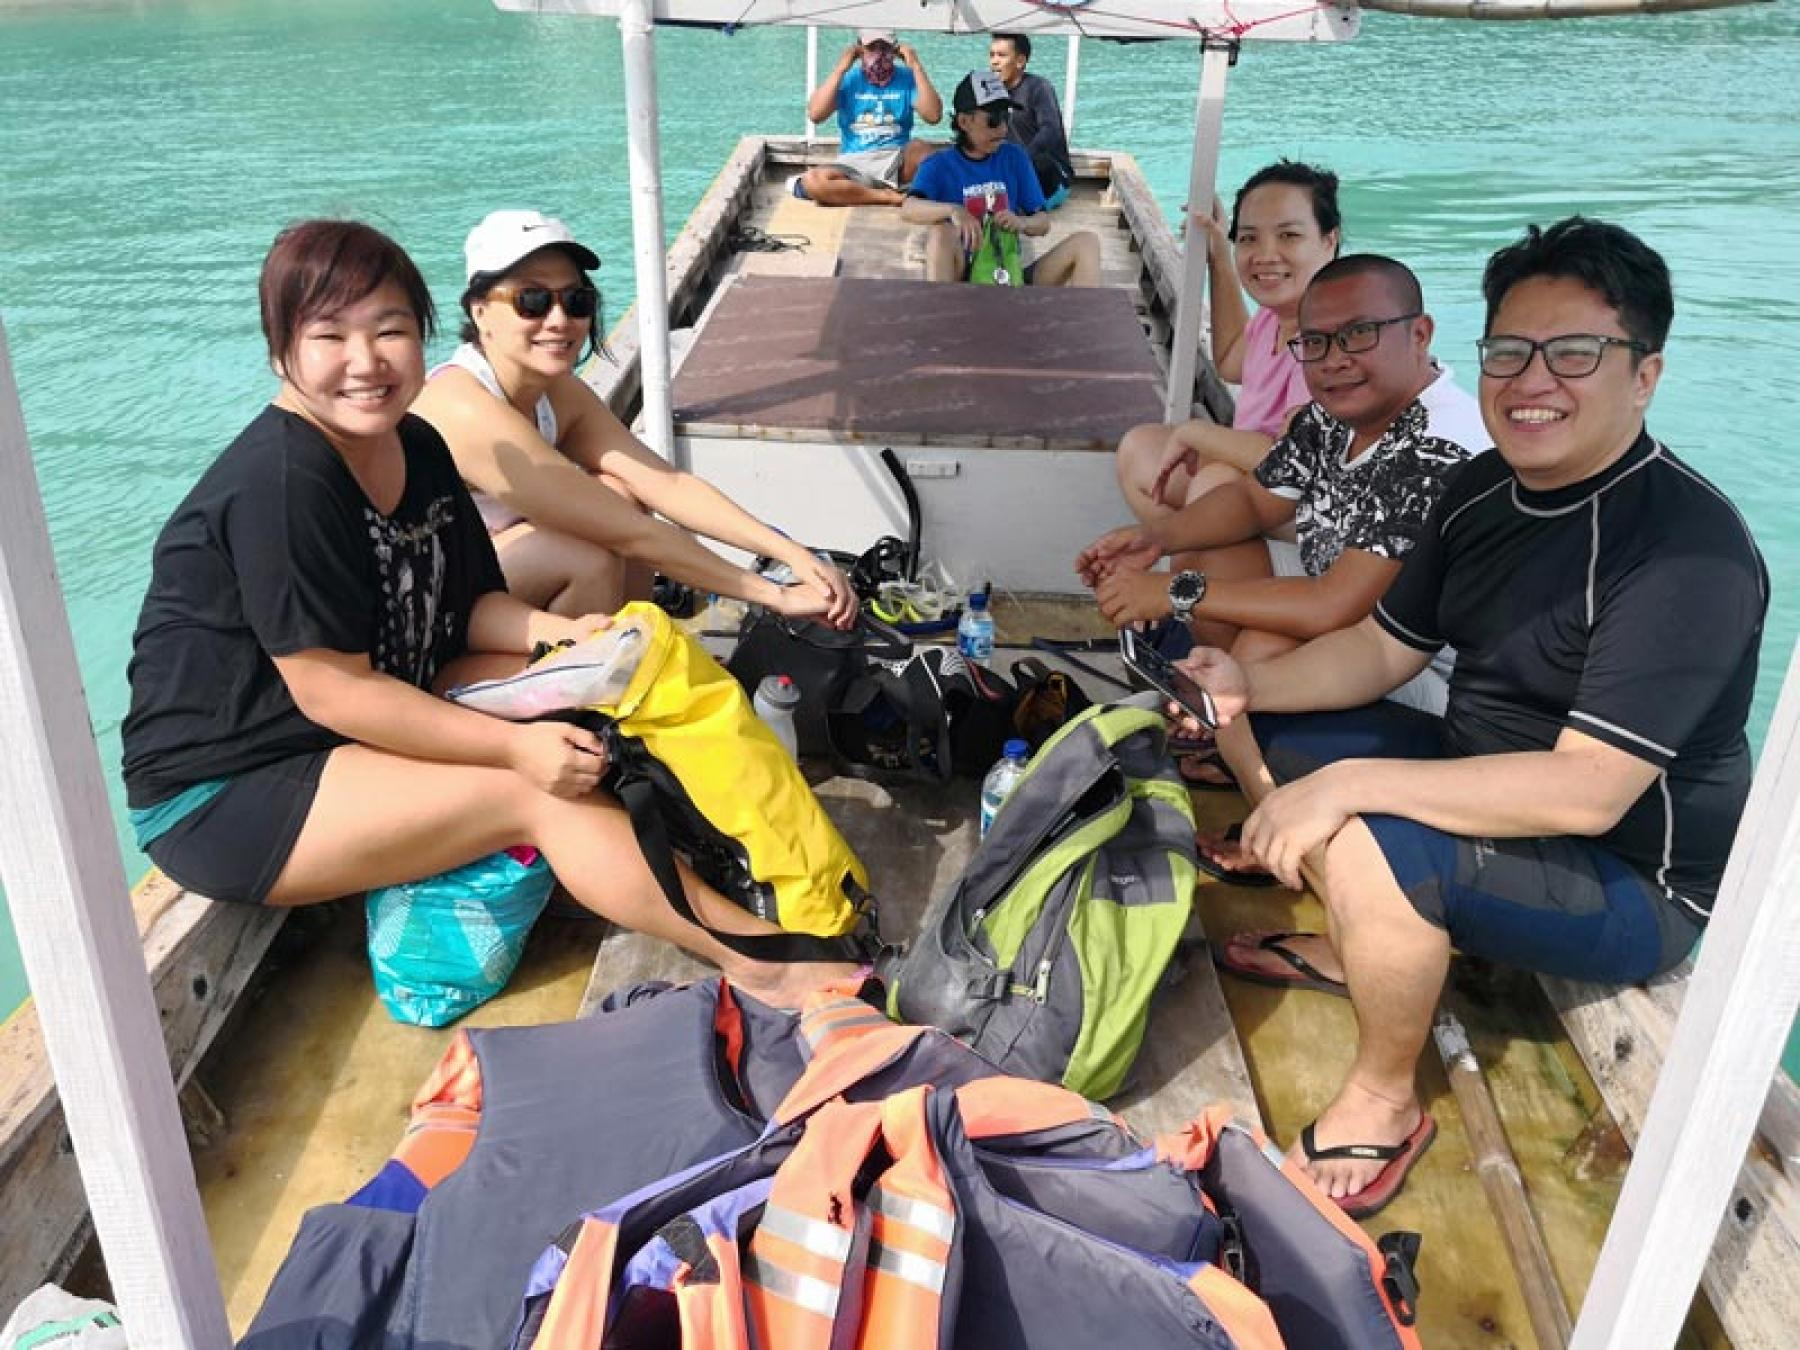 [3D2N] Weekend Getaway to Payung Island in Seribu starting at Jakarta, Indonesia